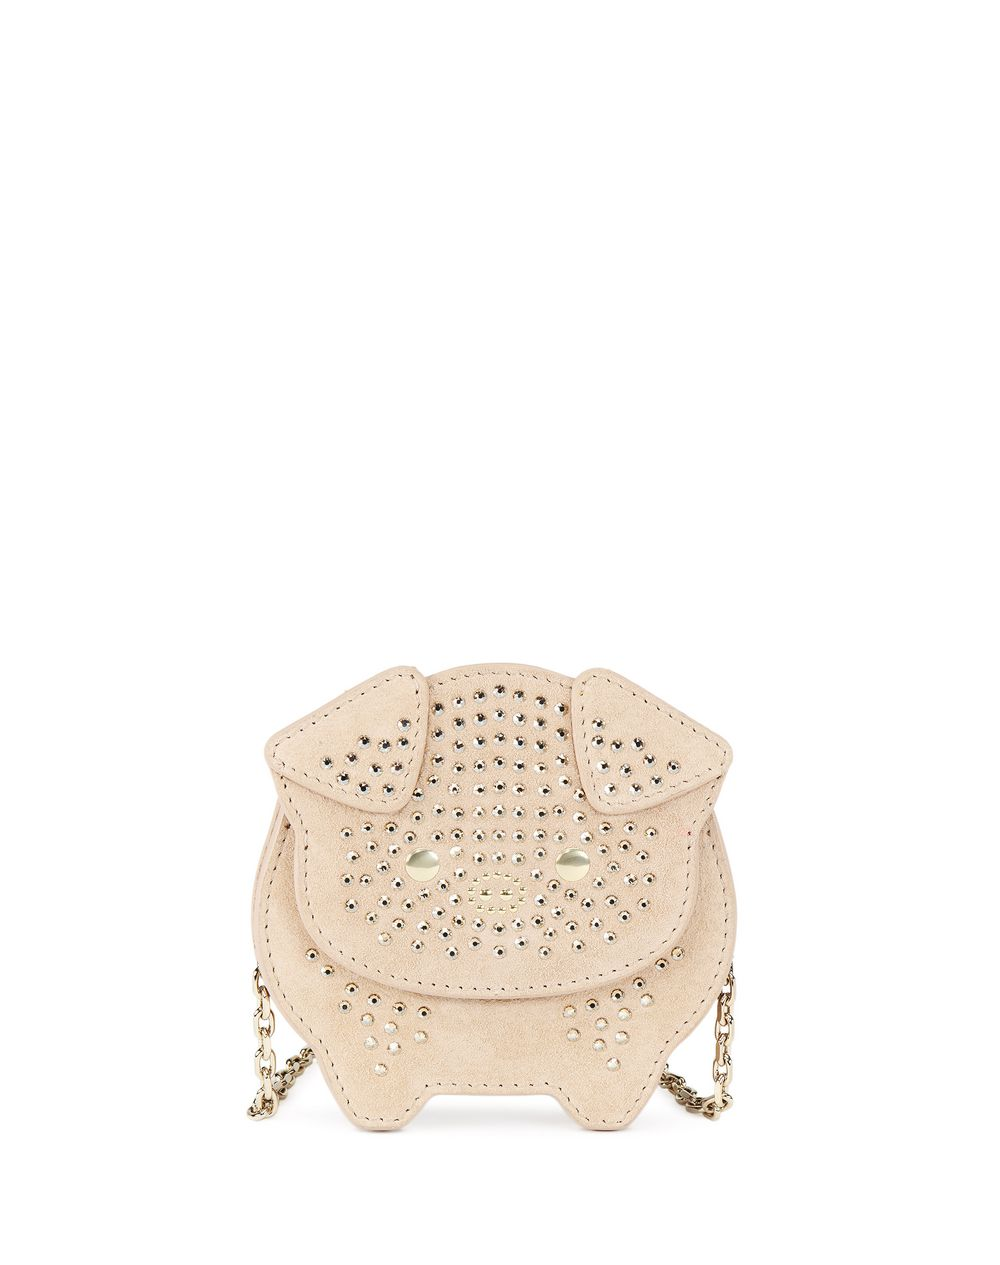 PALE GOLD EMBROIDERED COIN PURSE BAG - Lanvin